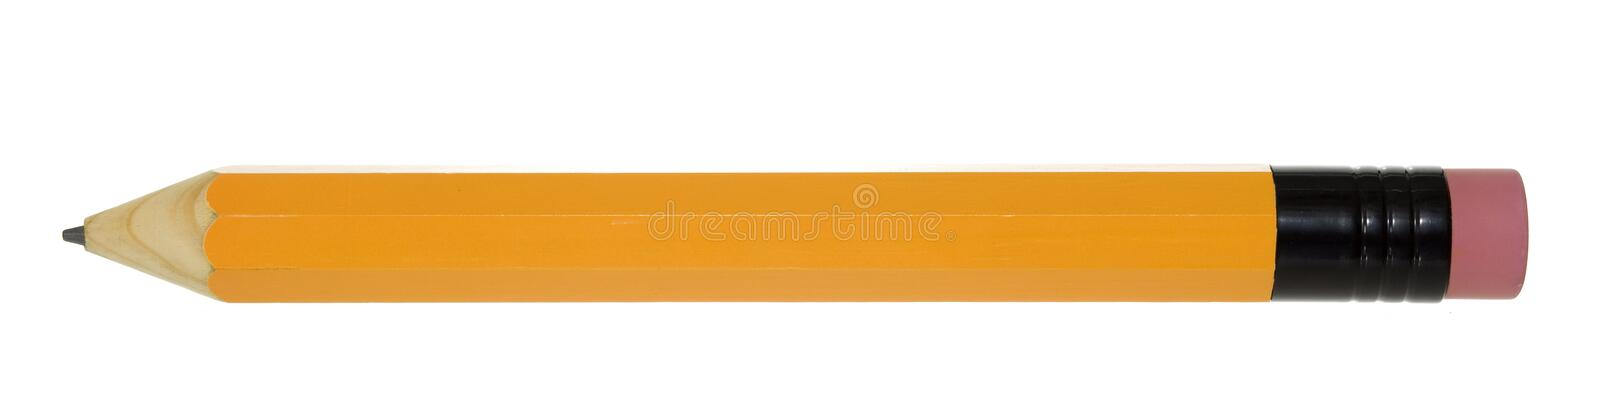 Download Pencil Isolated Side View stock image. Image of writing - 21169103